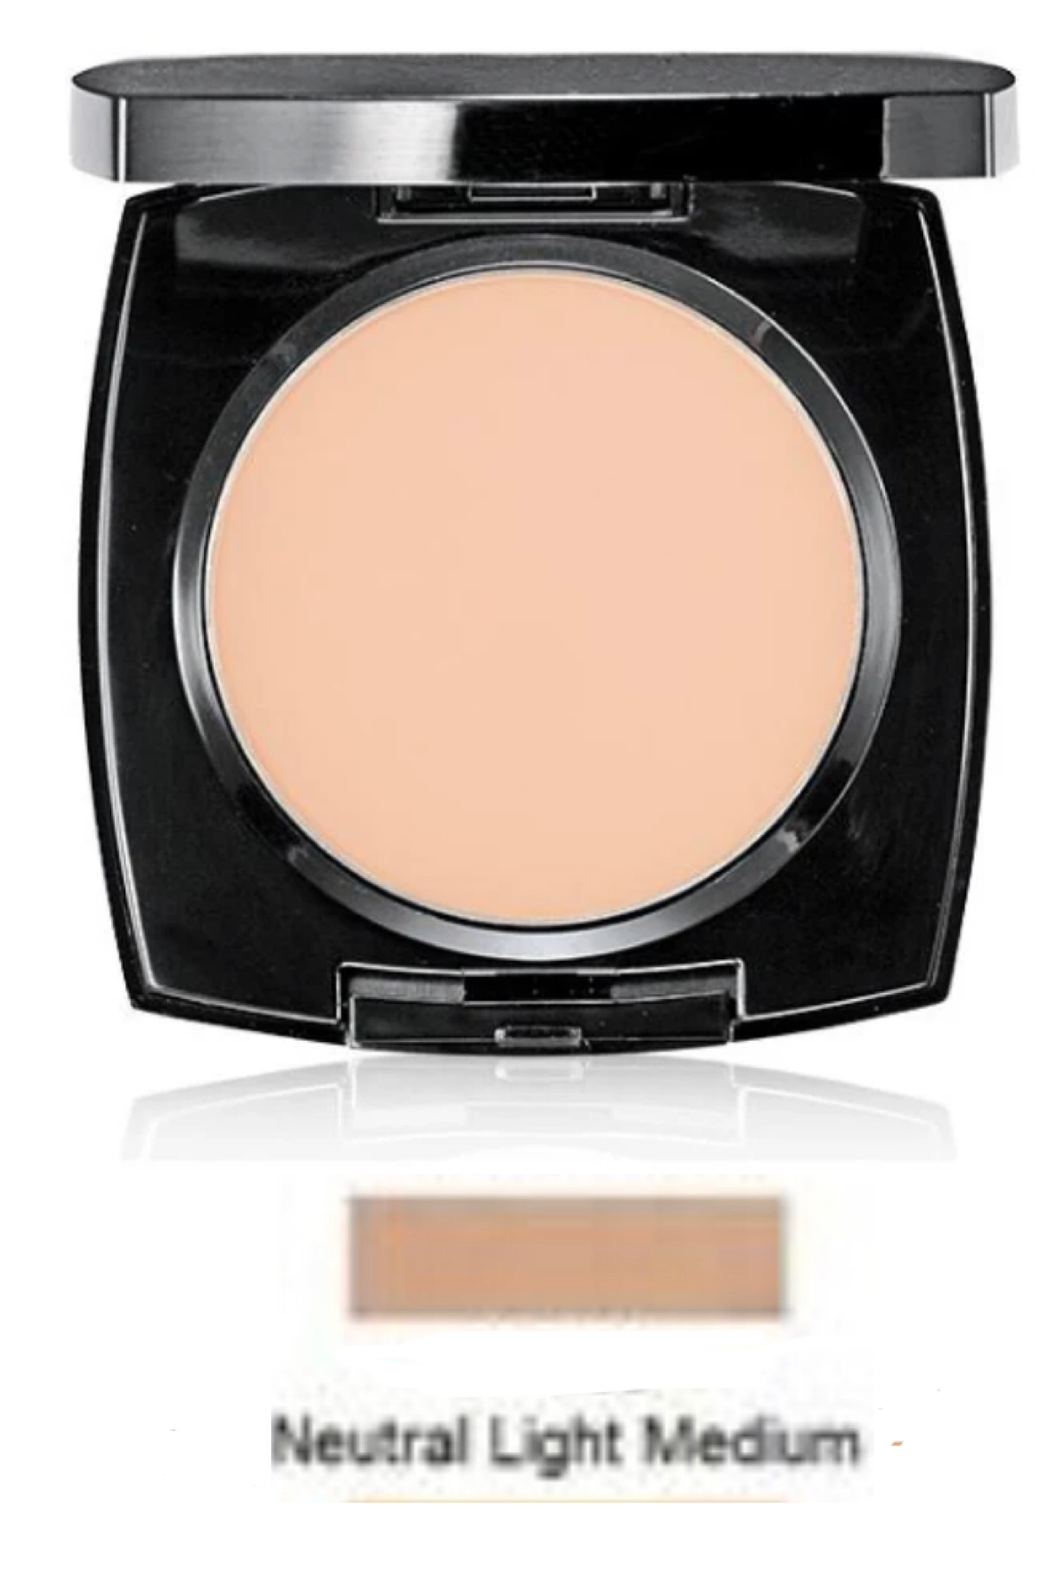 Neutral Light Medium  True Flawless Mattifying Pressed Powder